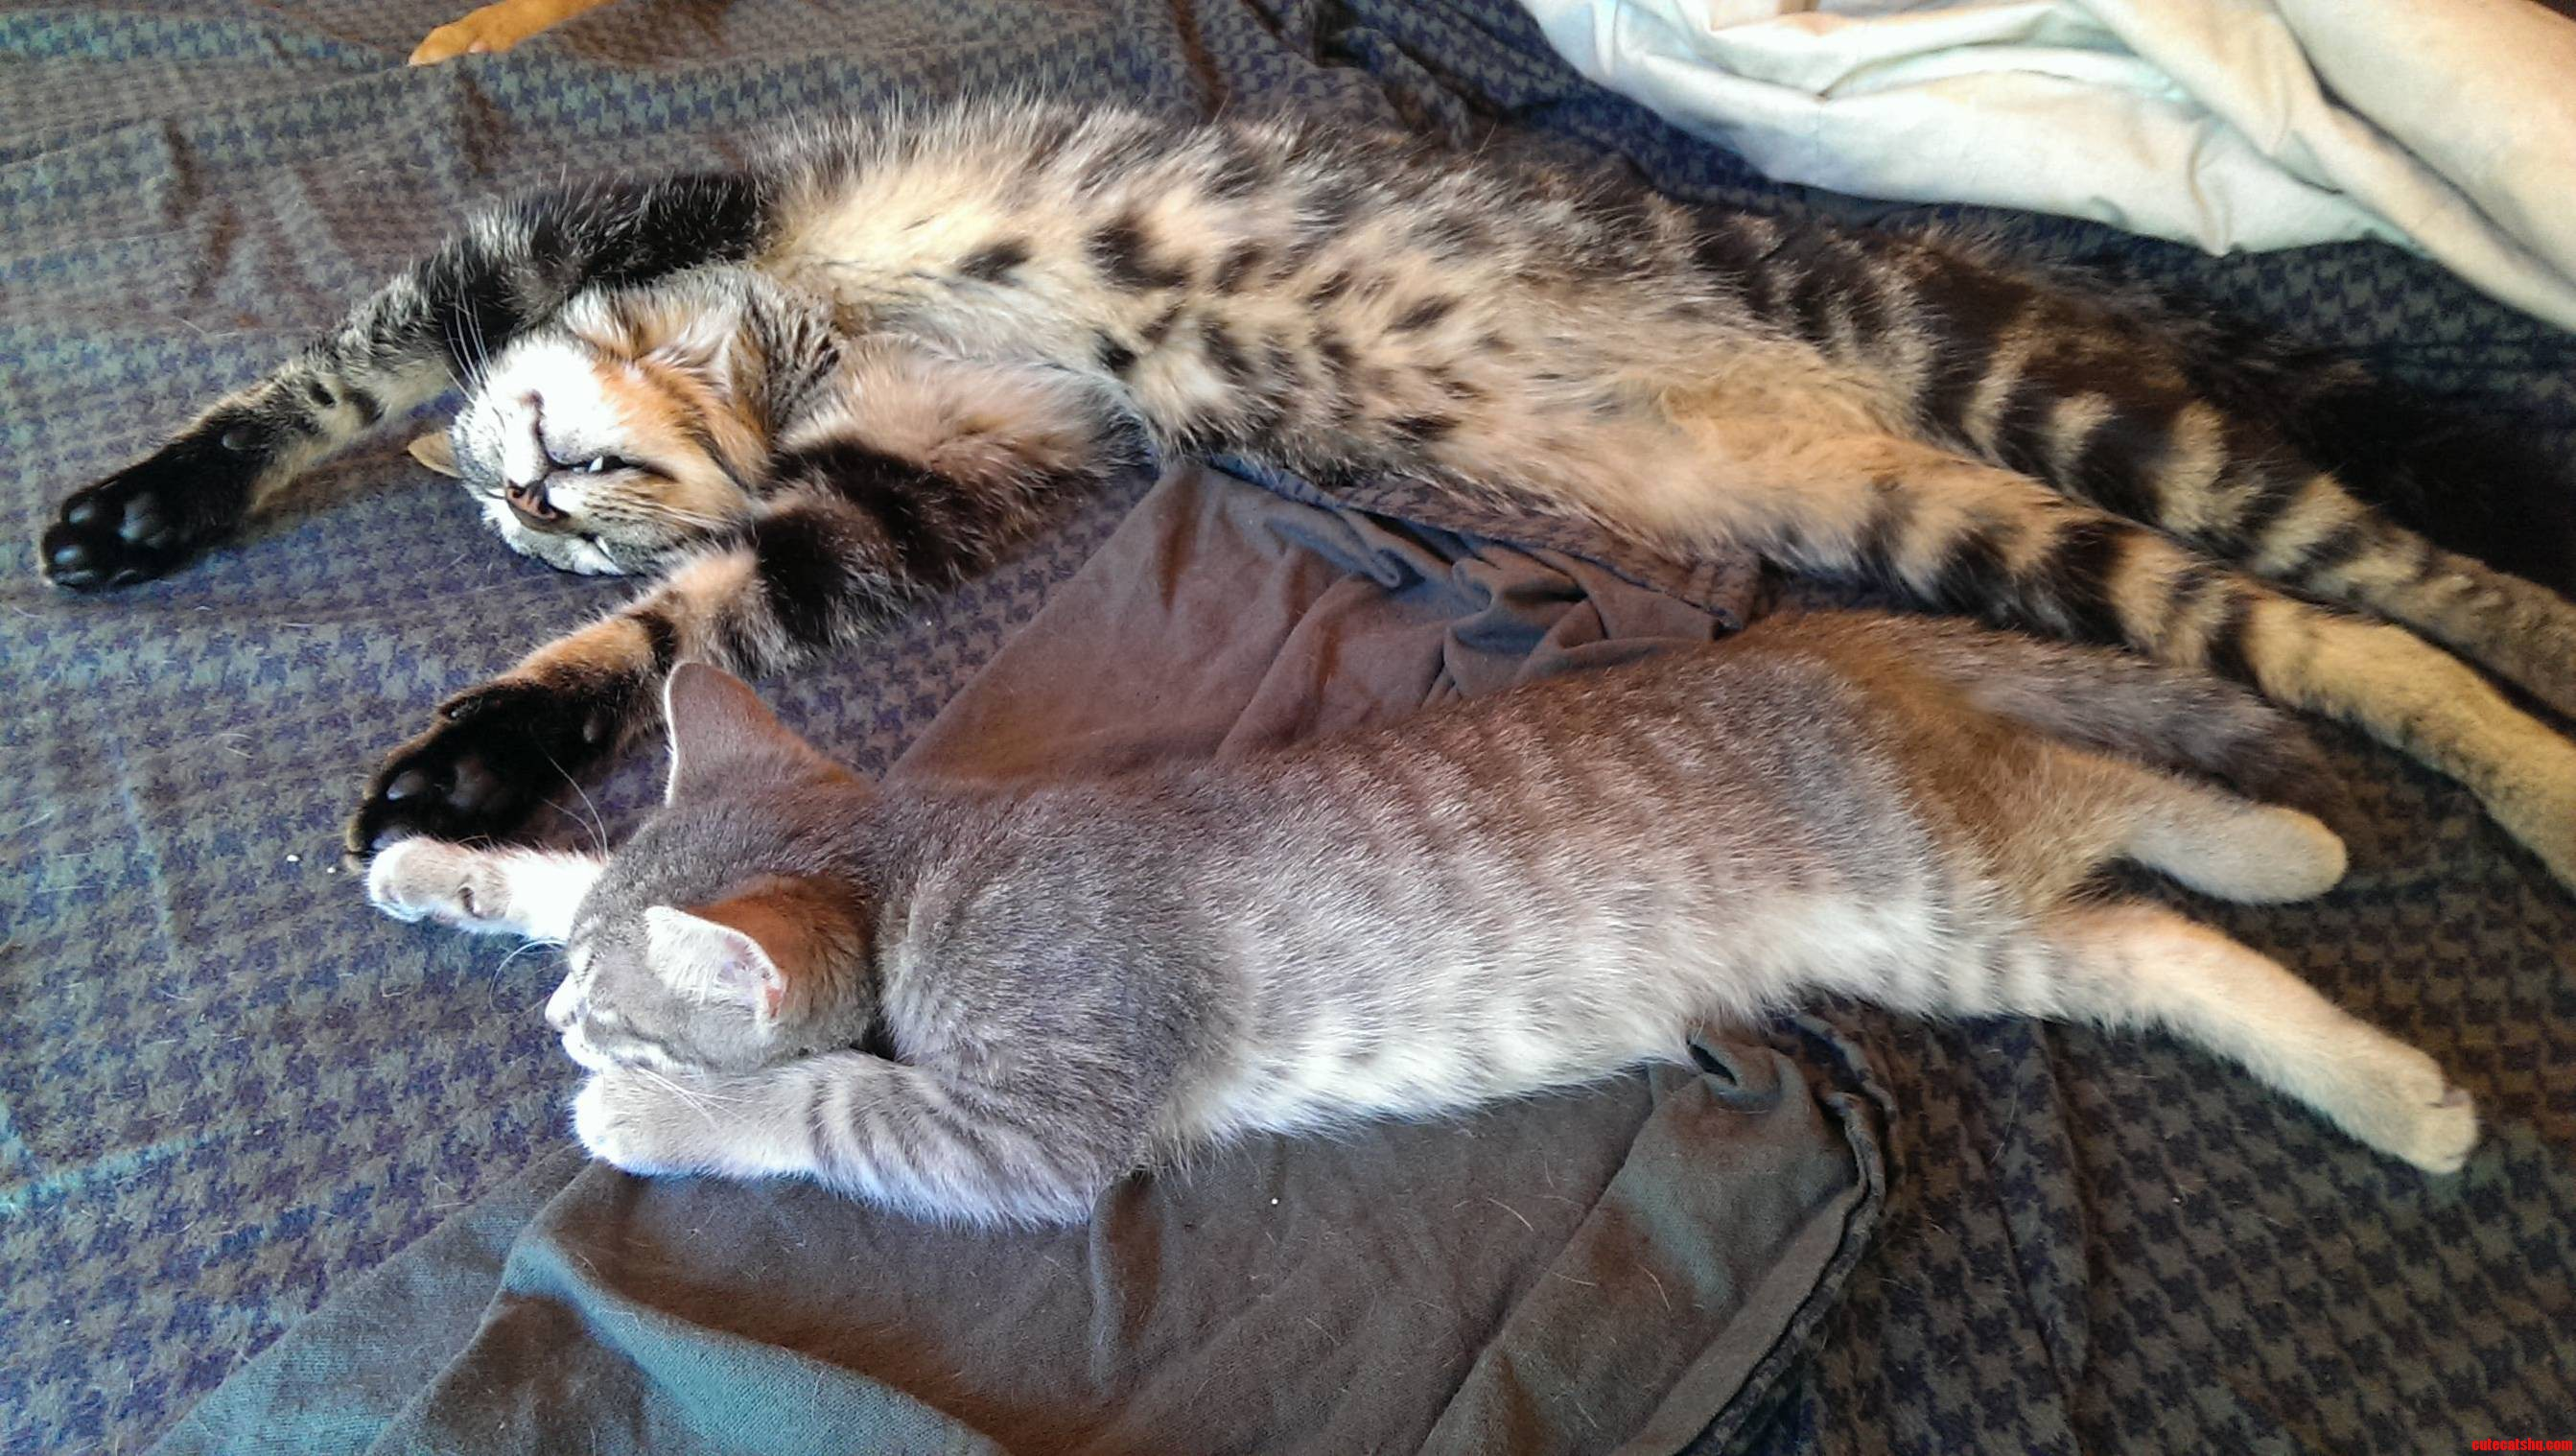 Two Cats In A Serious Afternoon Nap